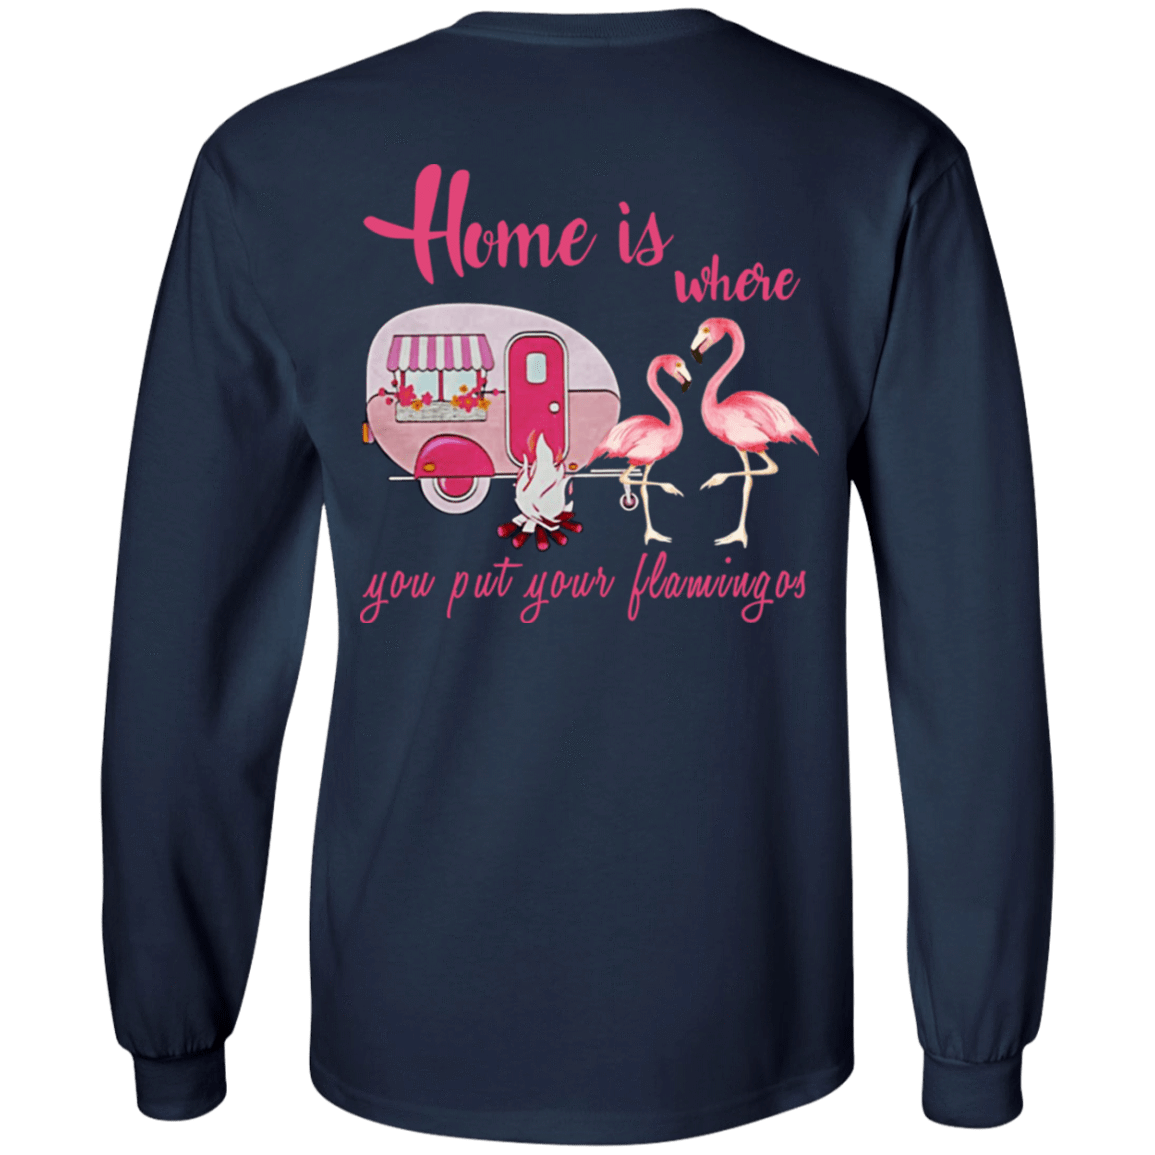 Home Is Where You Put Your Flamingos 30-184-71739802-331 - Tee Ript